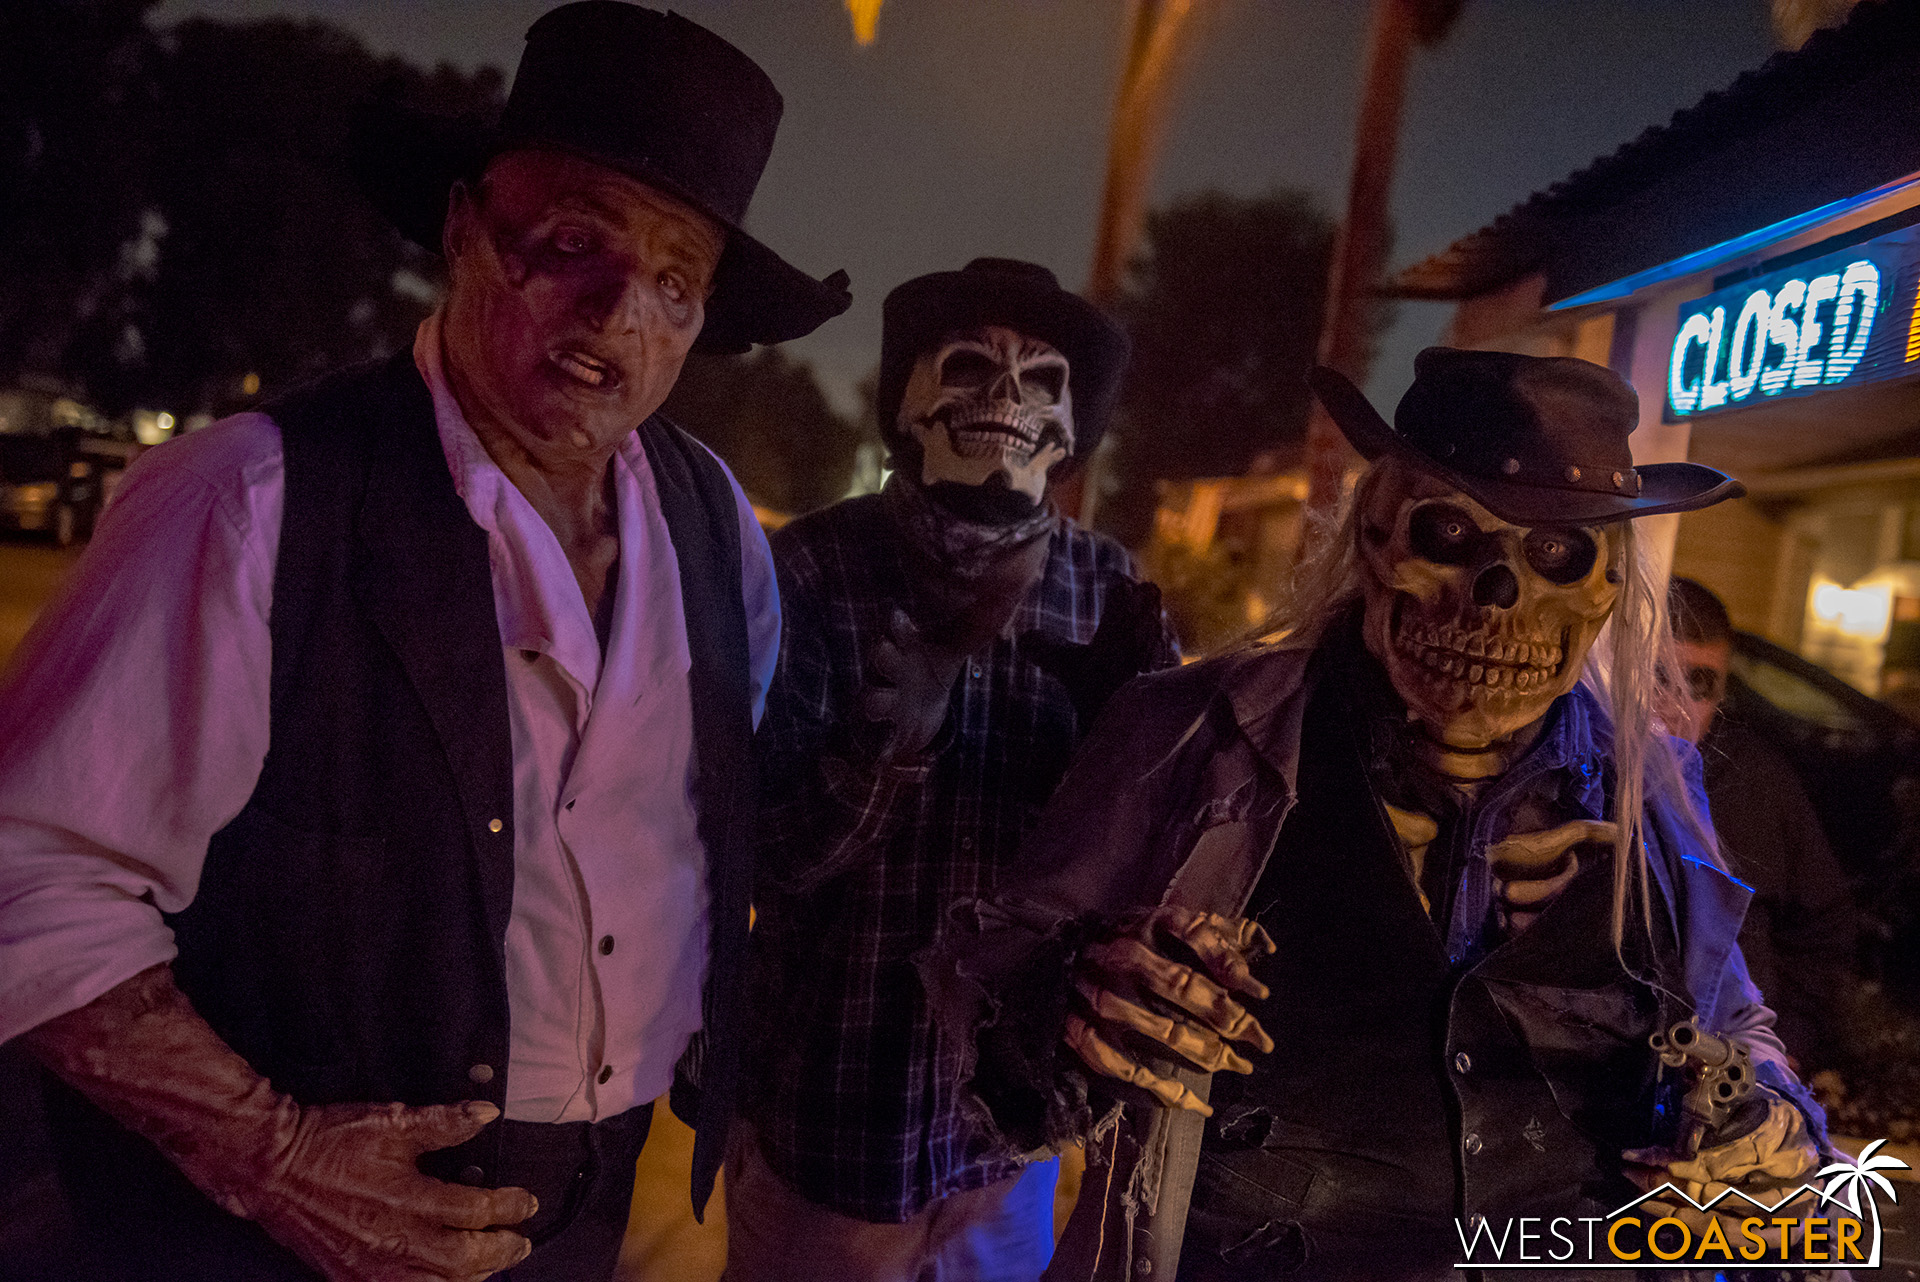 Terrifying creatures abound at Boot Hill despite its rather short walkthrough length!